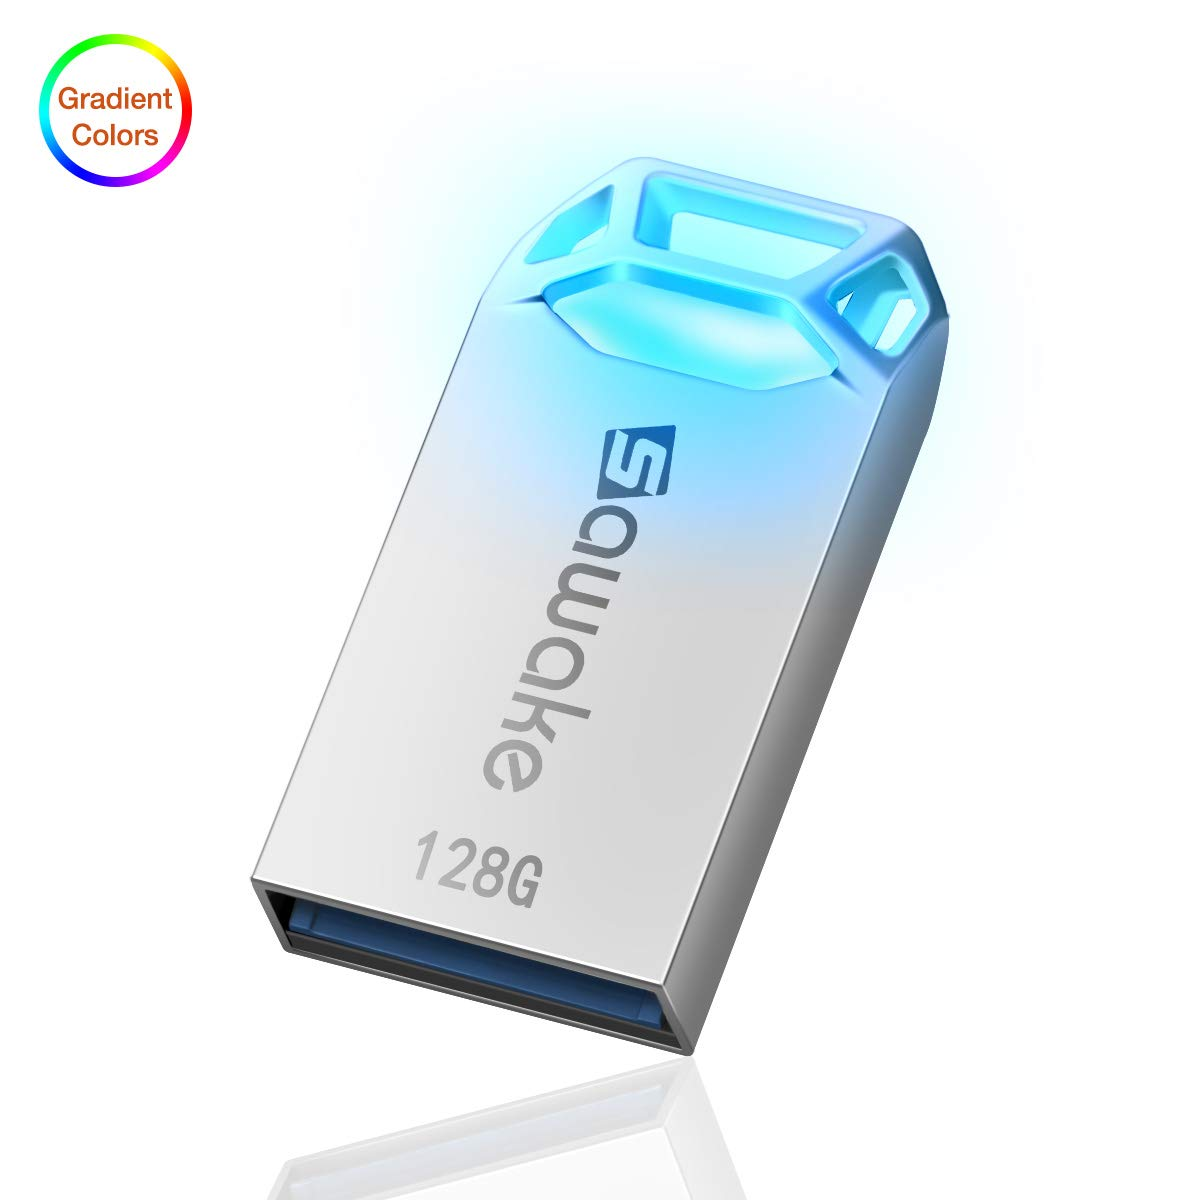 USB Flash Drive, SAWAKE 128GB USB 3.0 Thumb Drive, Waterproof Memory Stick with Keychain (Silver)